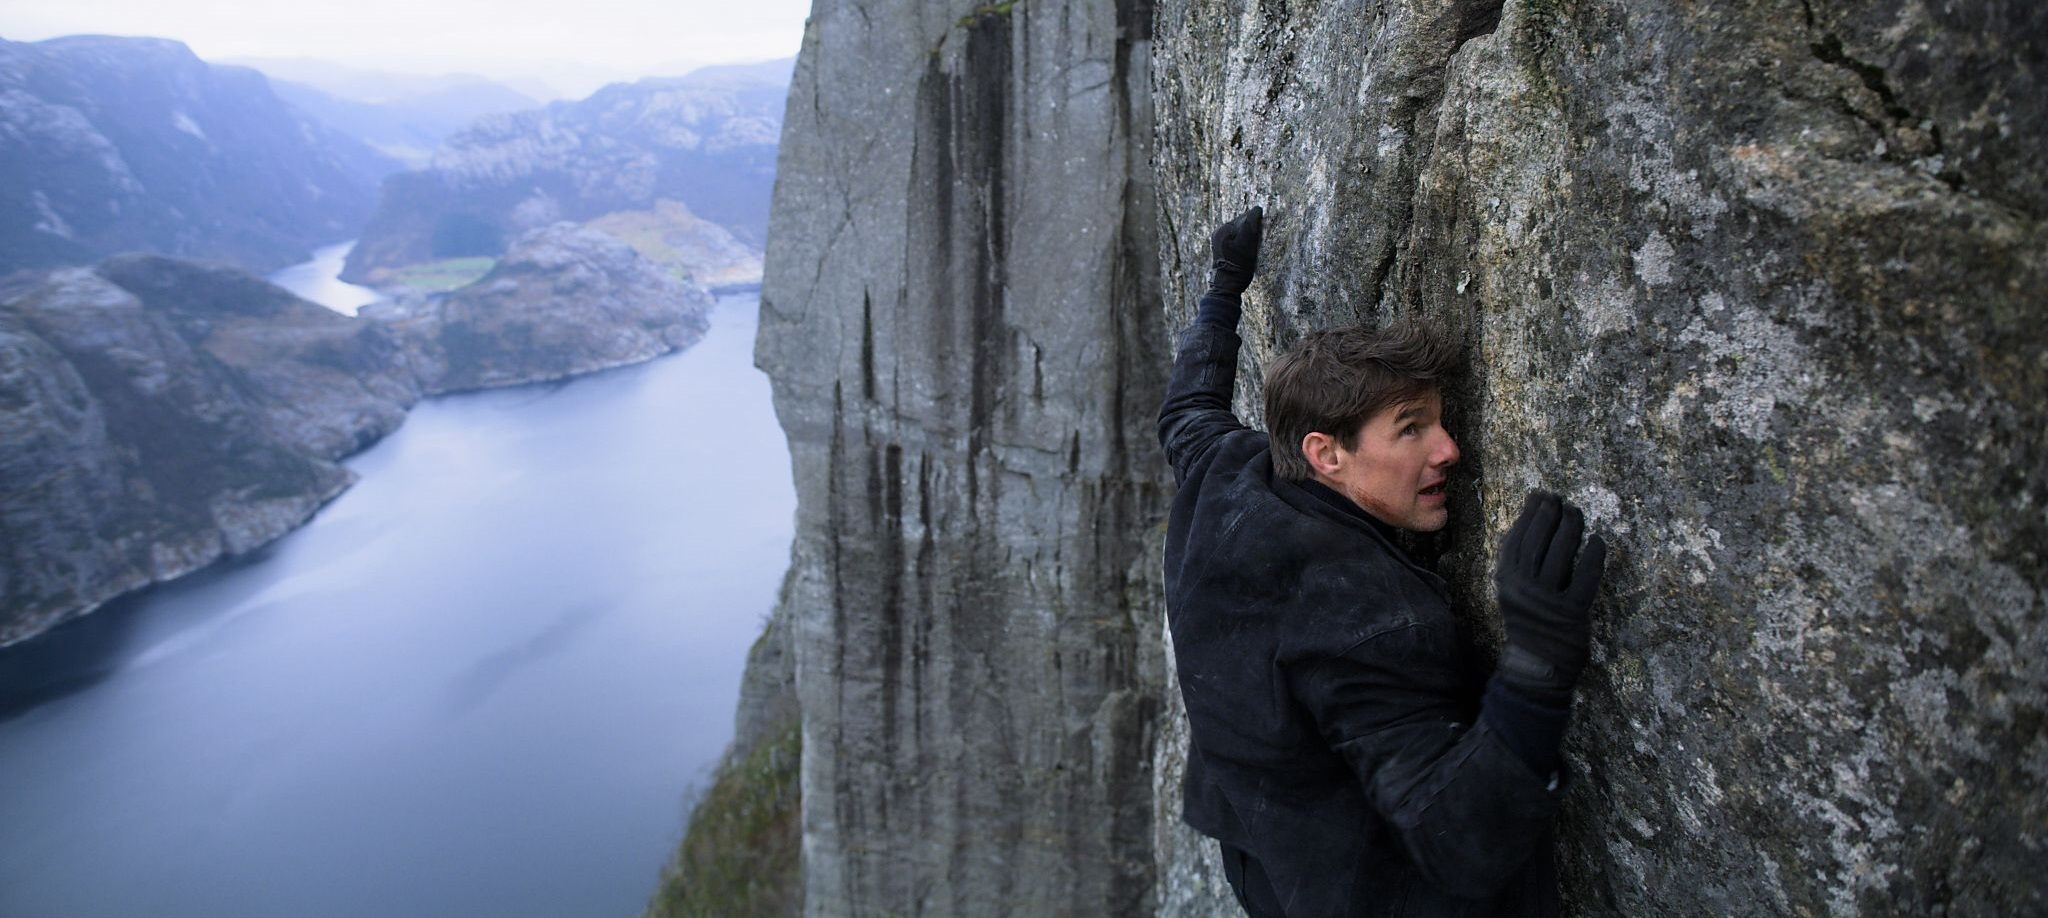 Tom Cruise as IMF agent Ethan Hunt in  Mission: Impossible—Fallout